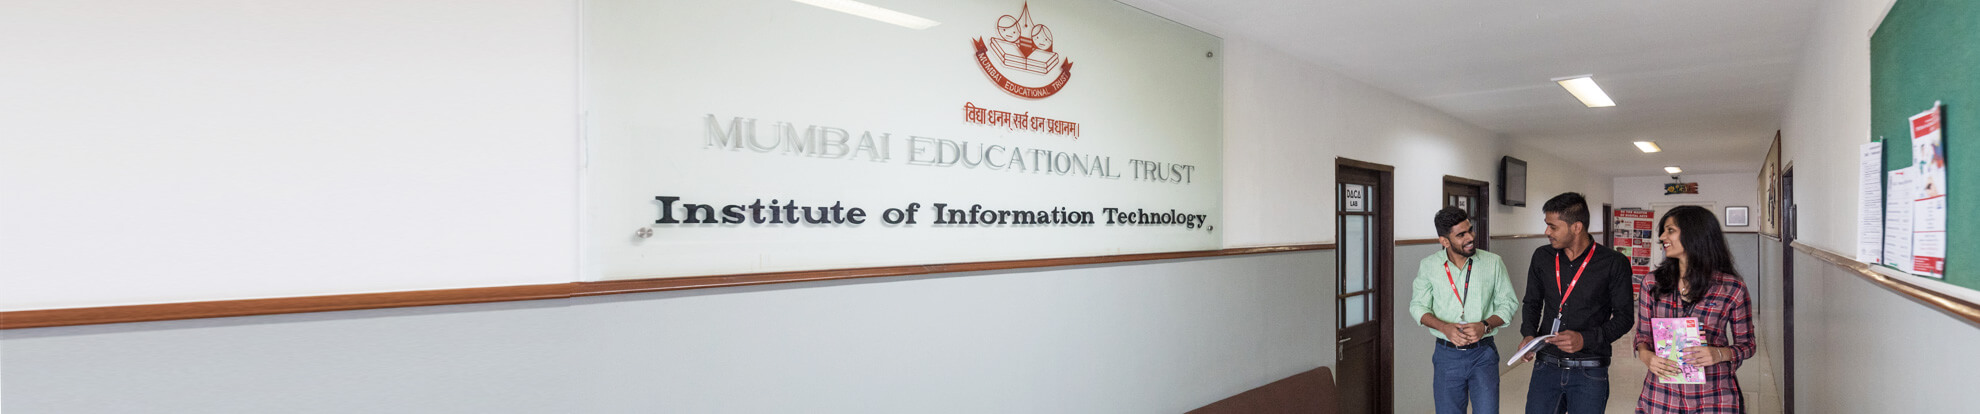 Institute of Information Technology